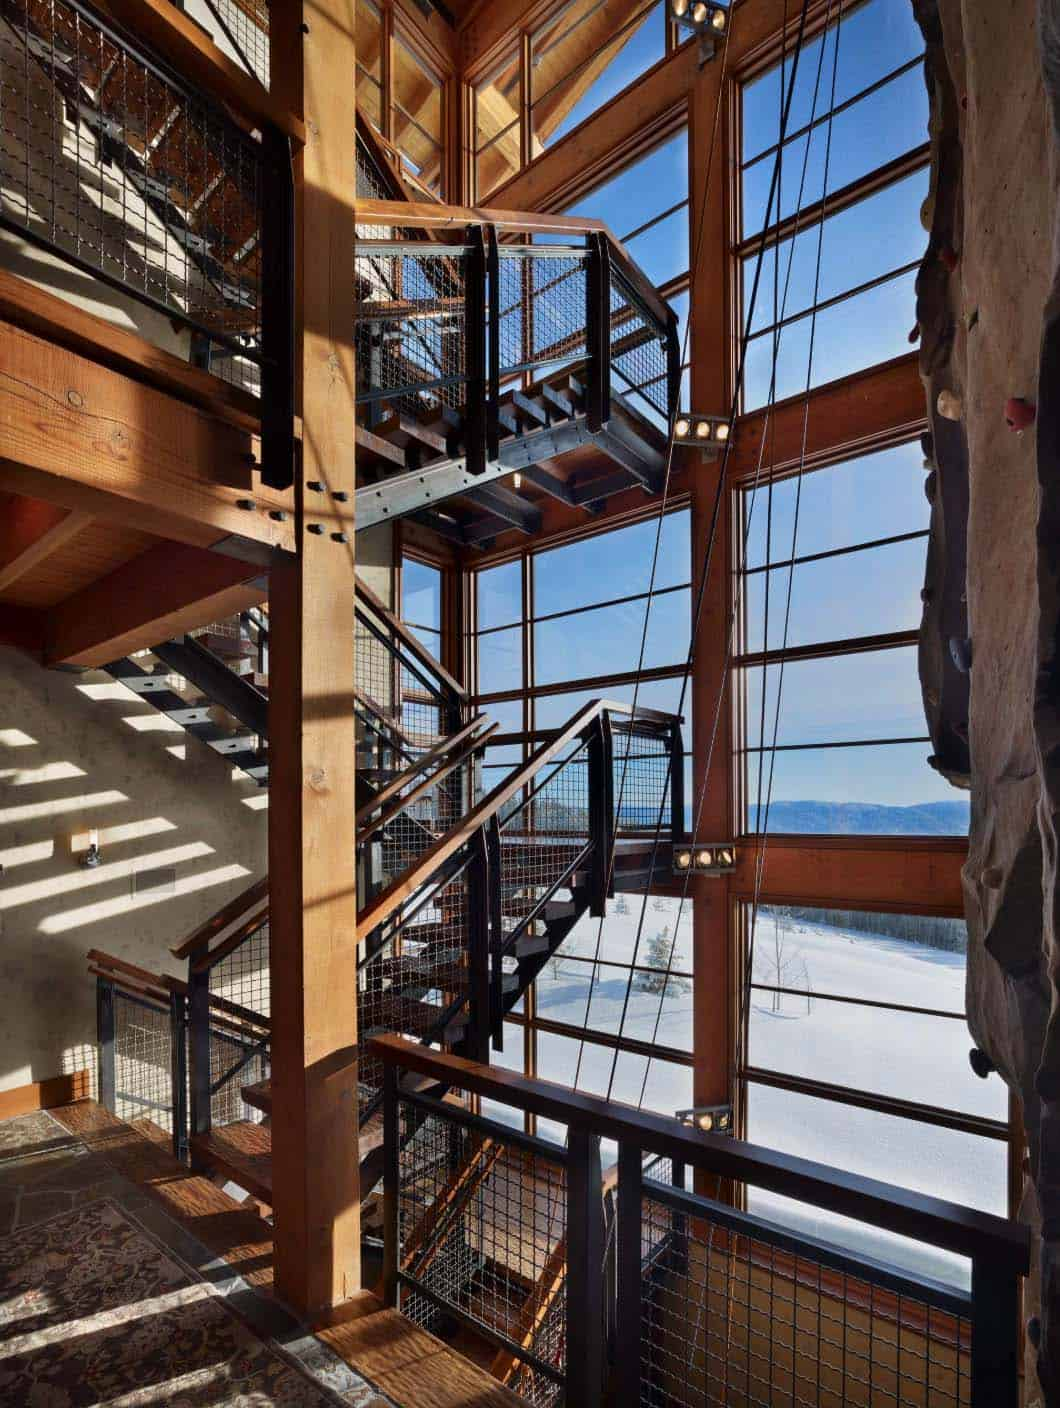 stair-tower-with-climbing-wall-industrial-staircase